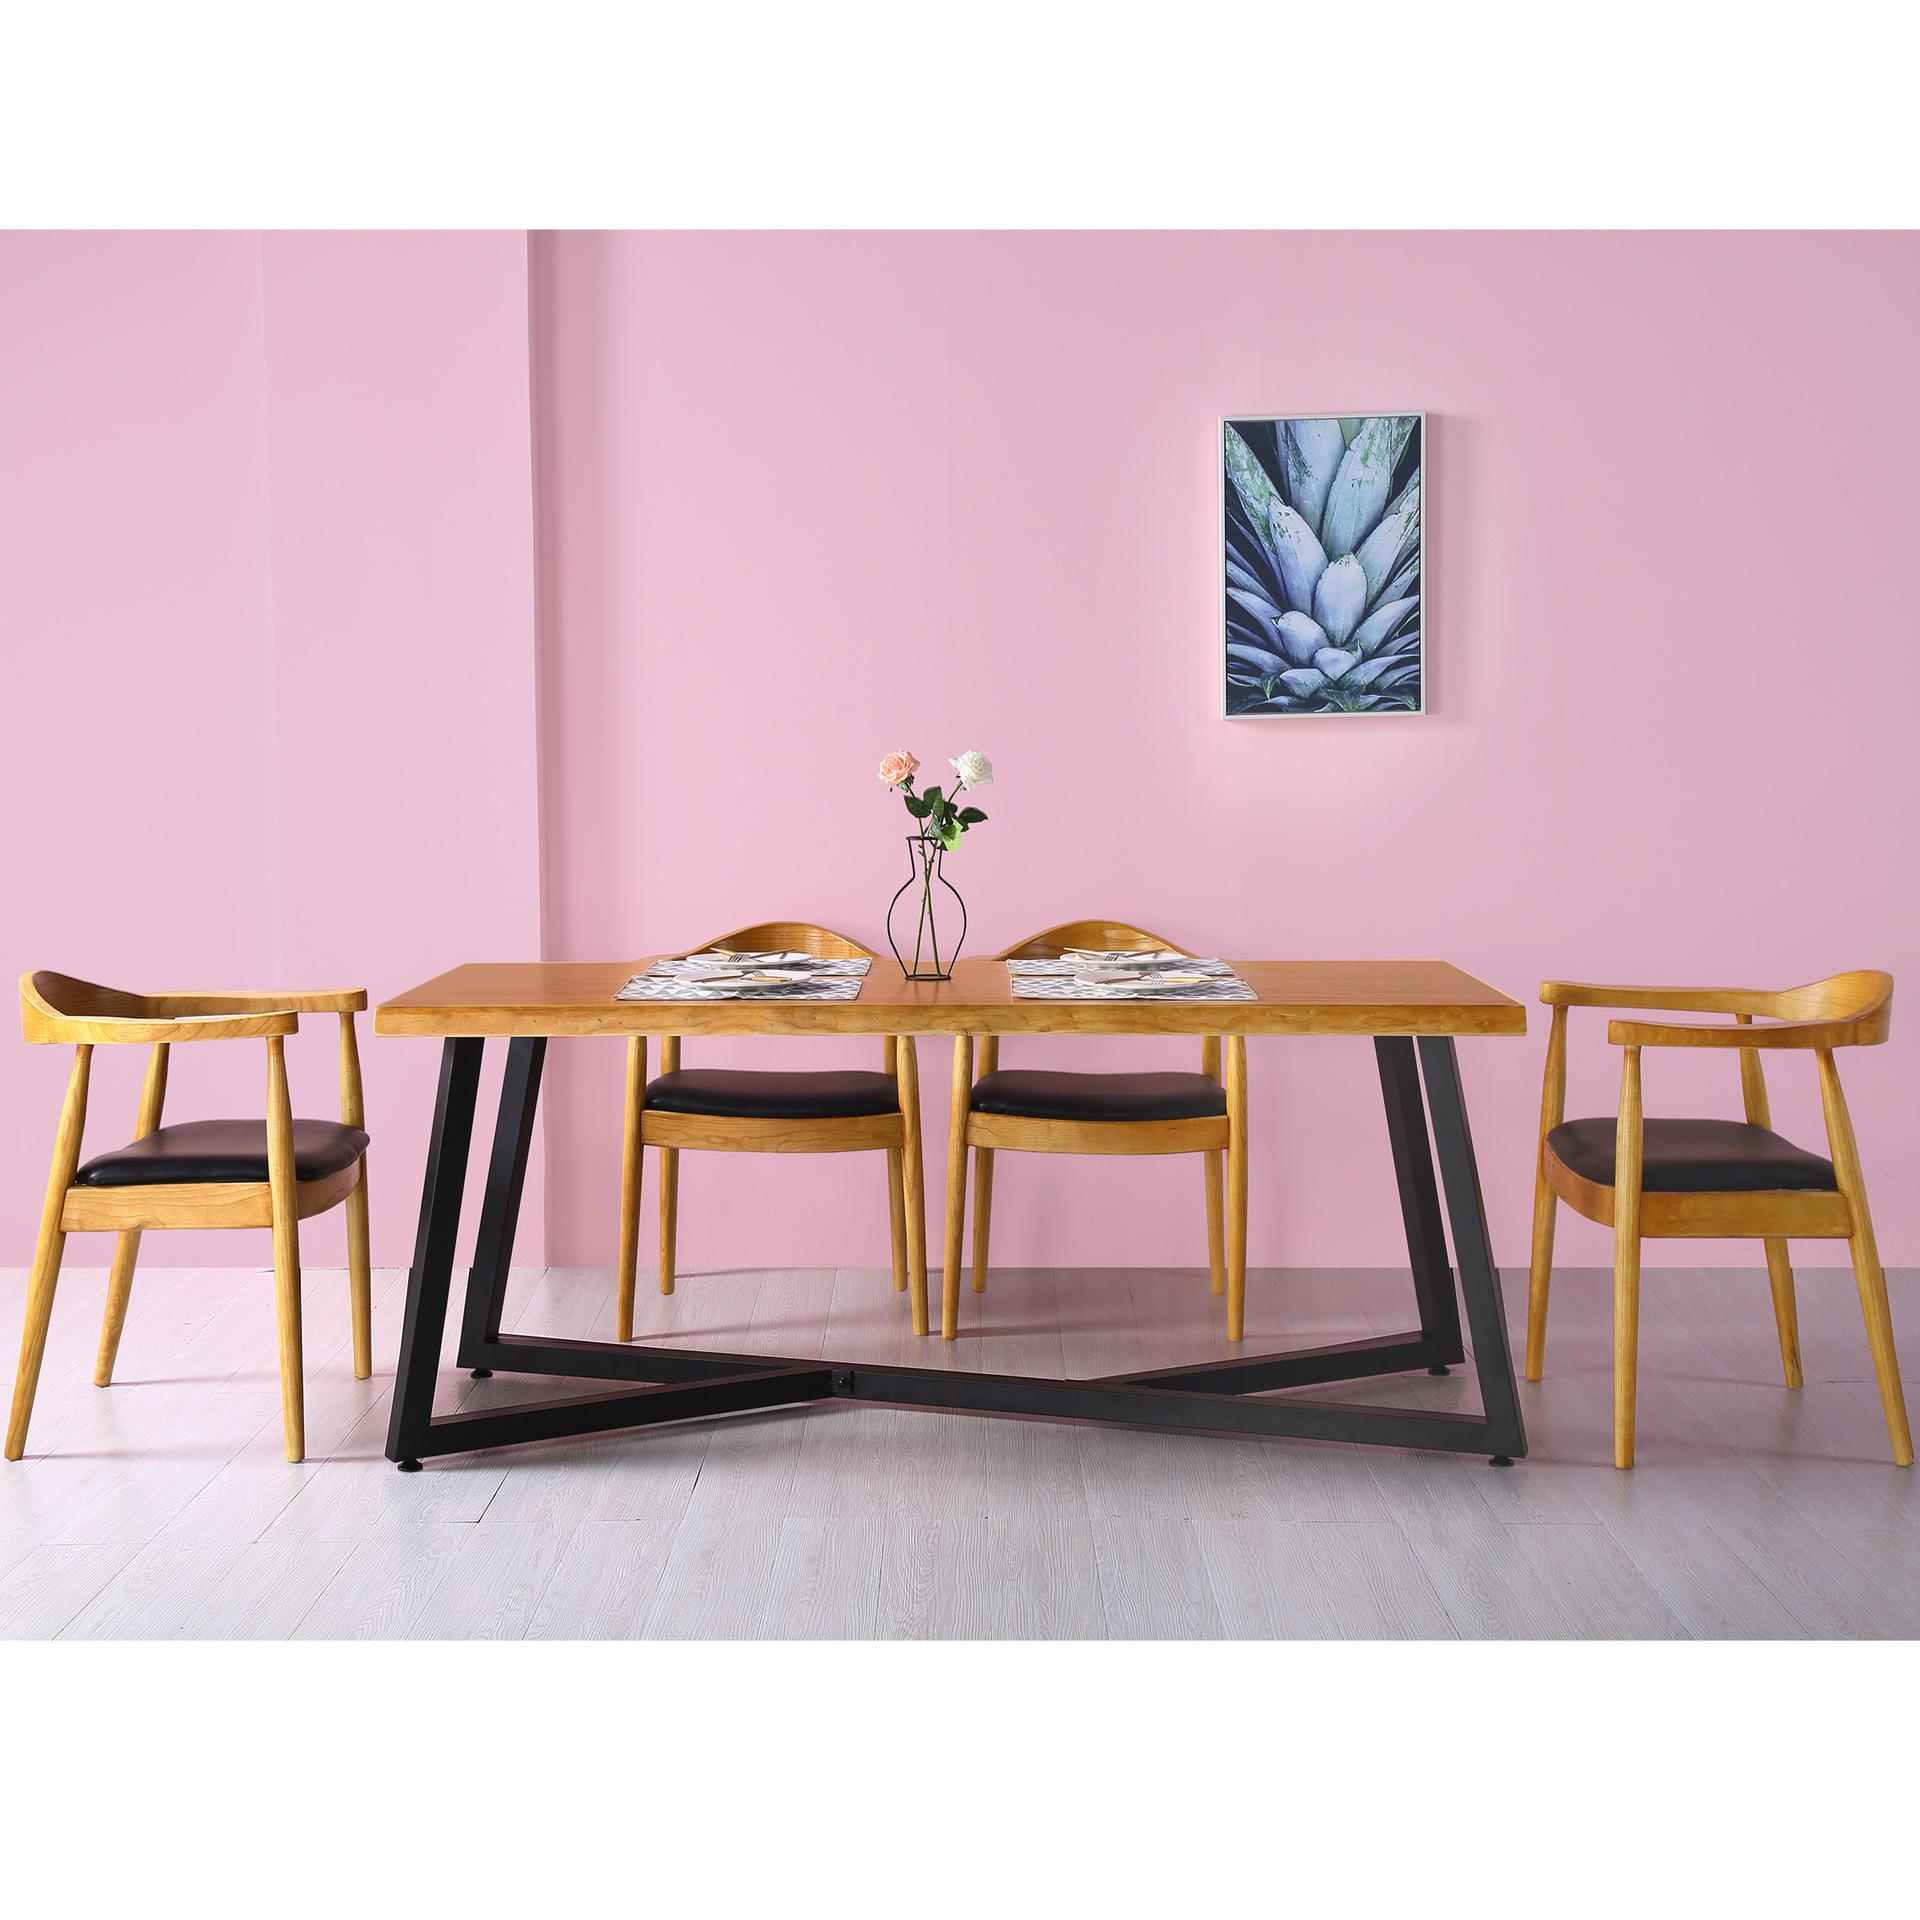 Northern Europe Small Apartment Home Solid Wood Dining Tables And Chairs Set Princess Style Wooden Furniture Strip Dining Tables And Chairs Set Customizable